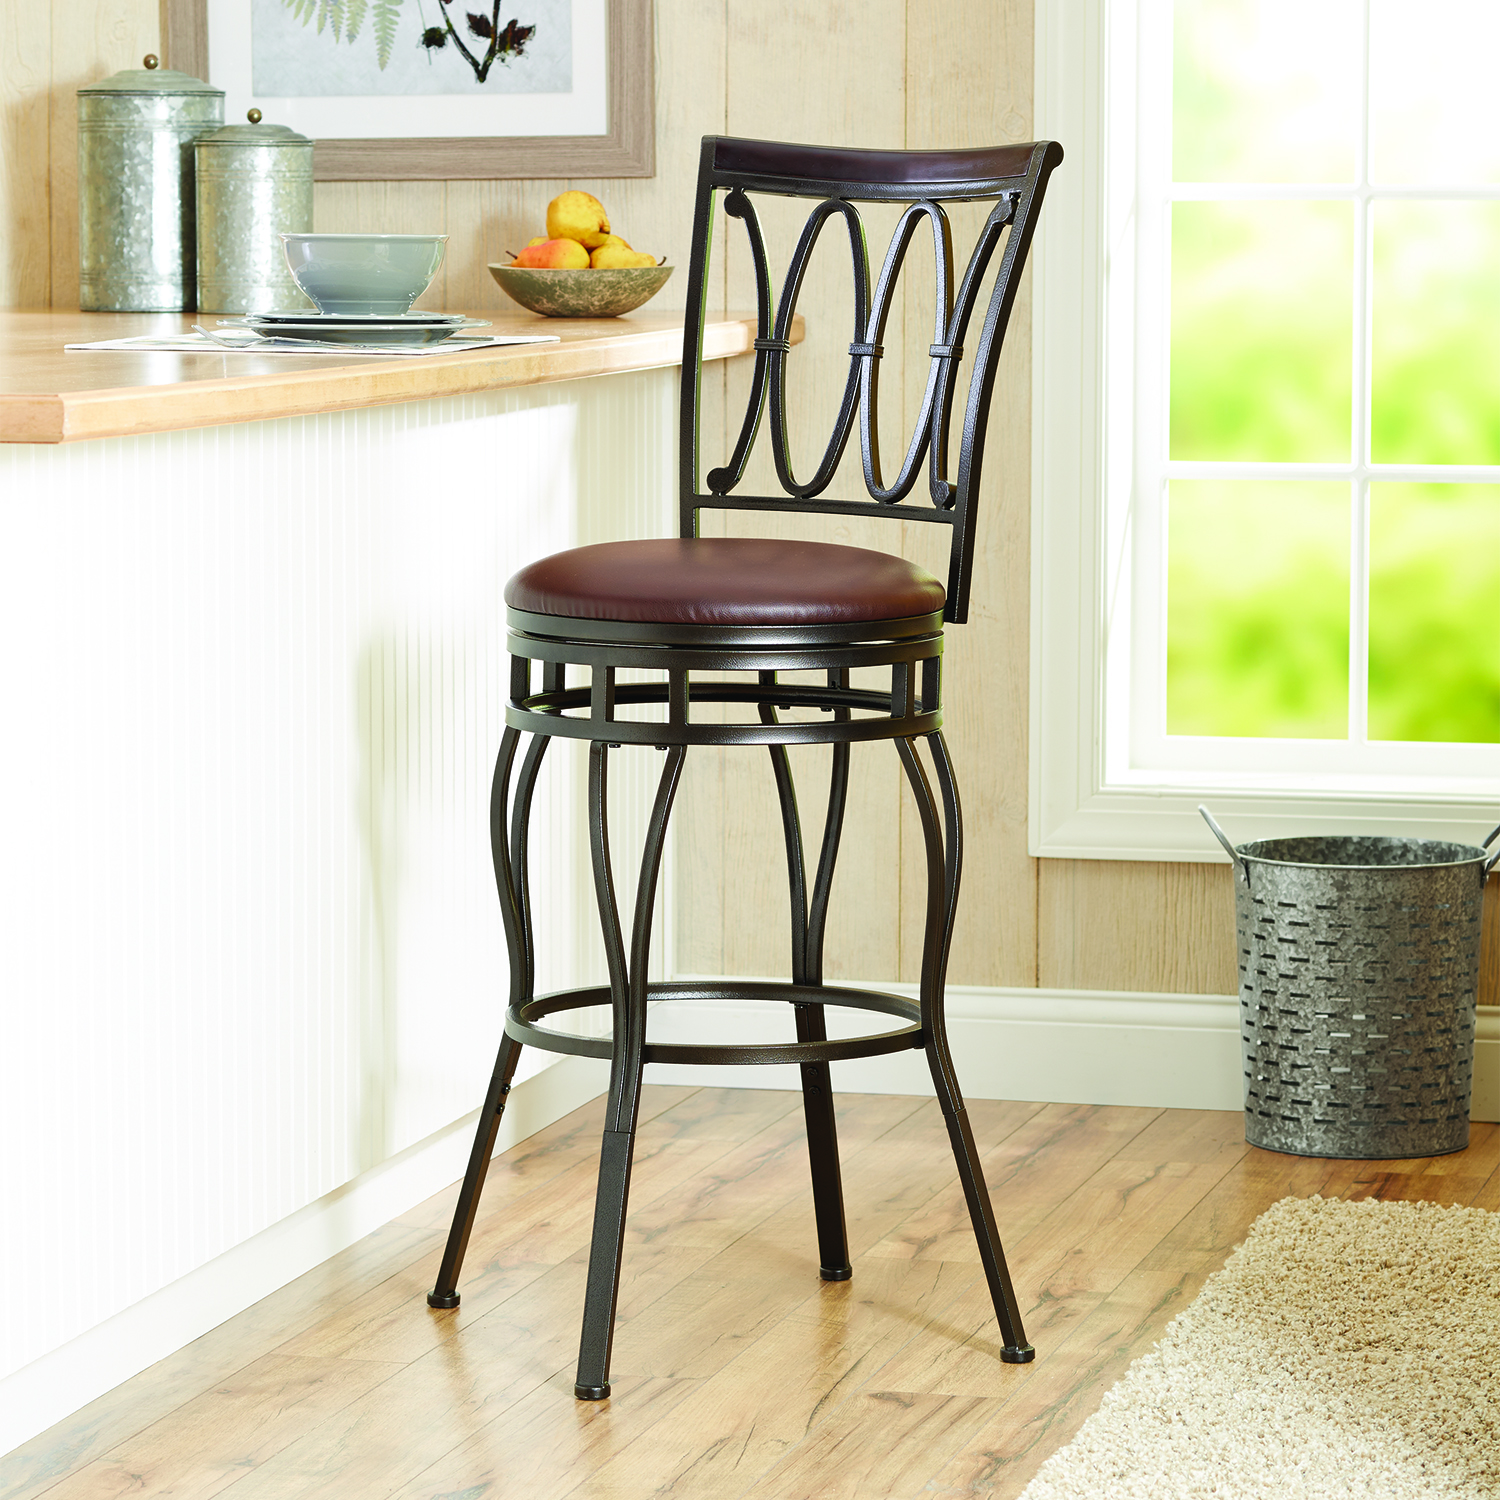 Better Homes and Gardens Adjustable Barstool Oil Rubbed Bronze & Better Homes and Gardens Adjustable Barstool Oil Rubbed Bronze ... islam-shia.org